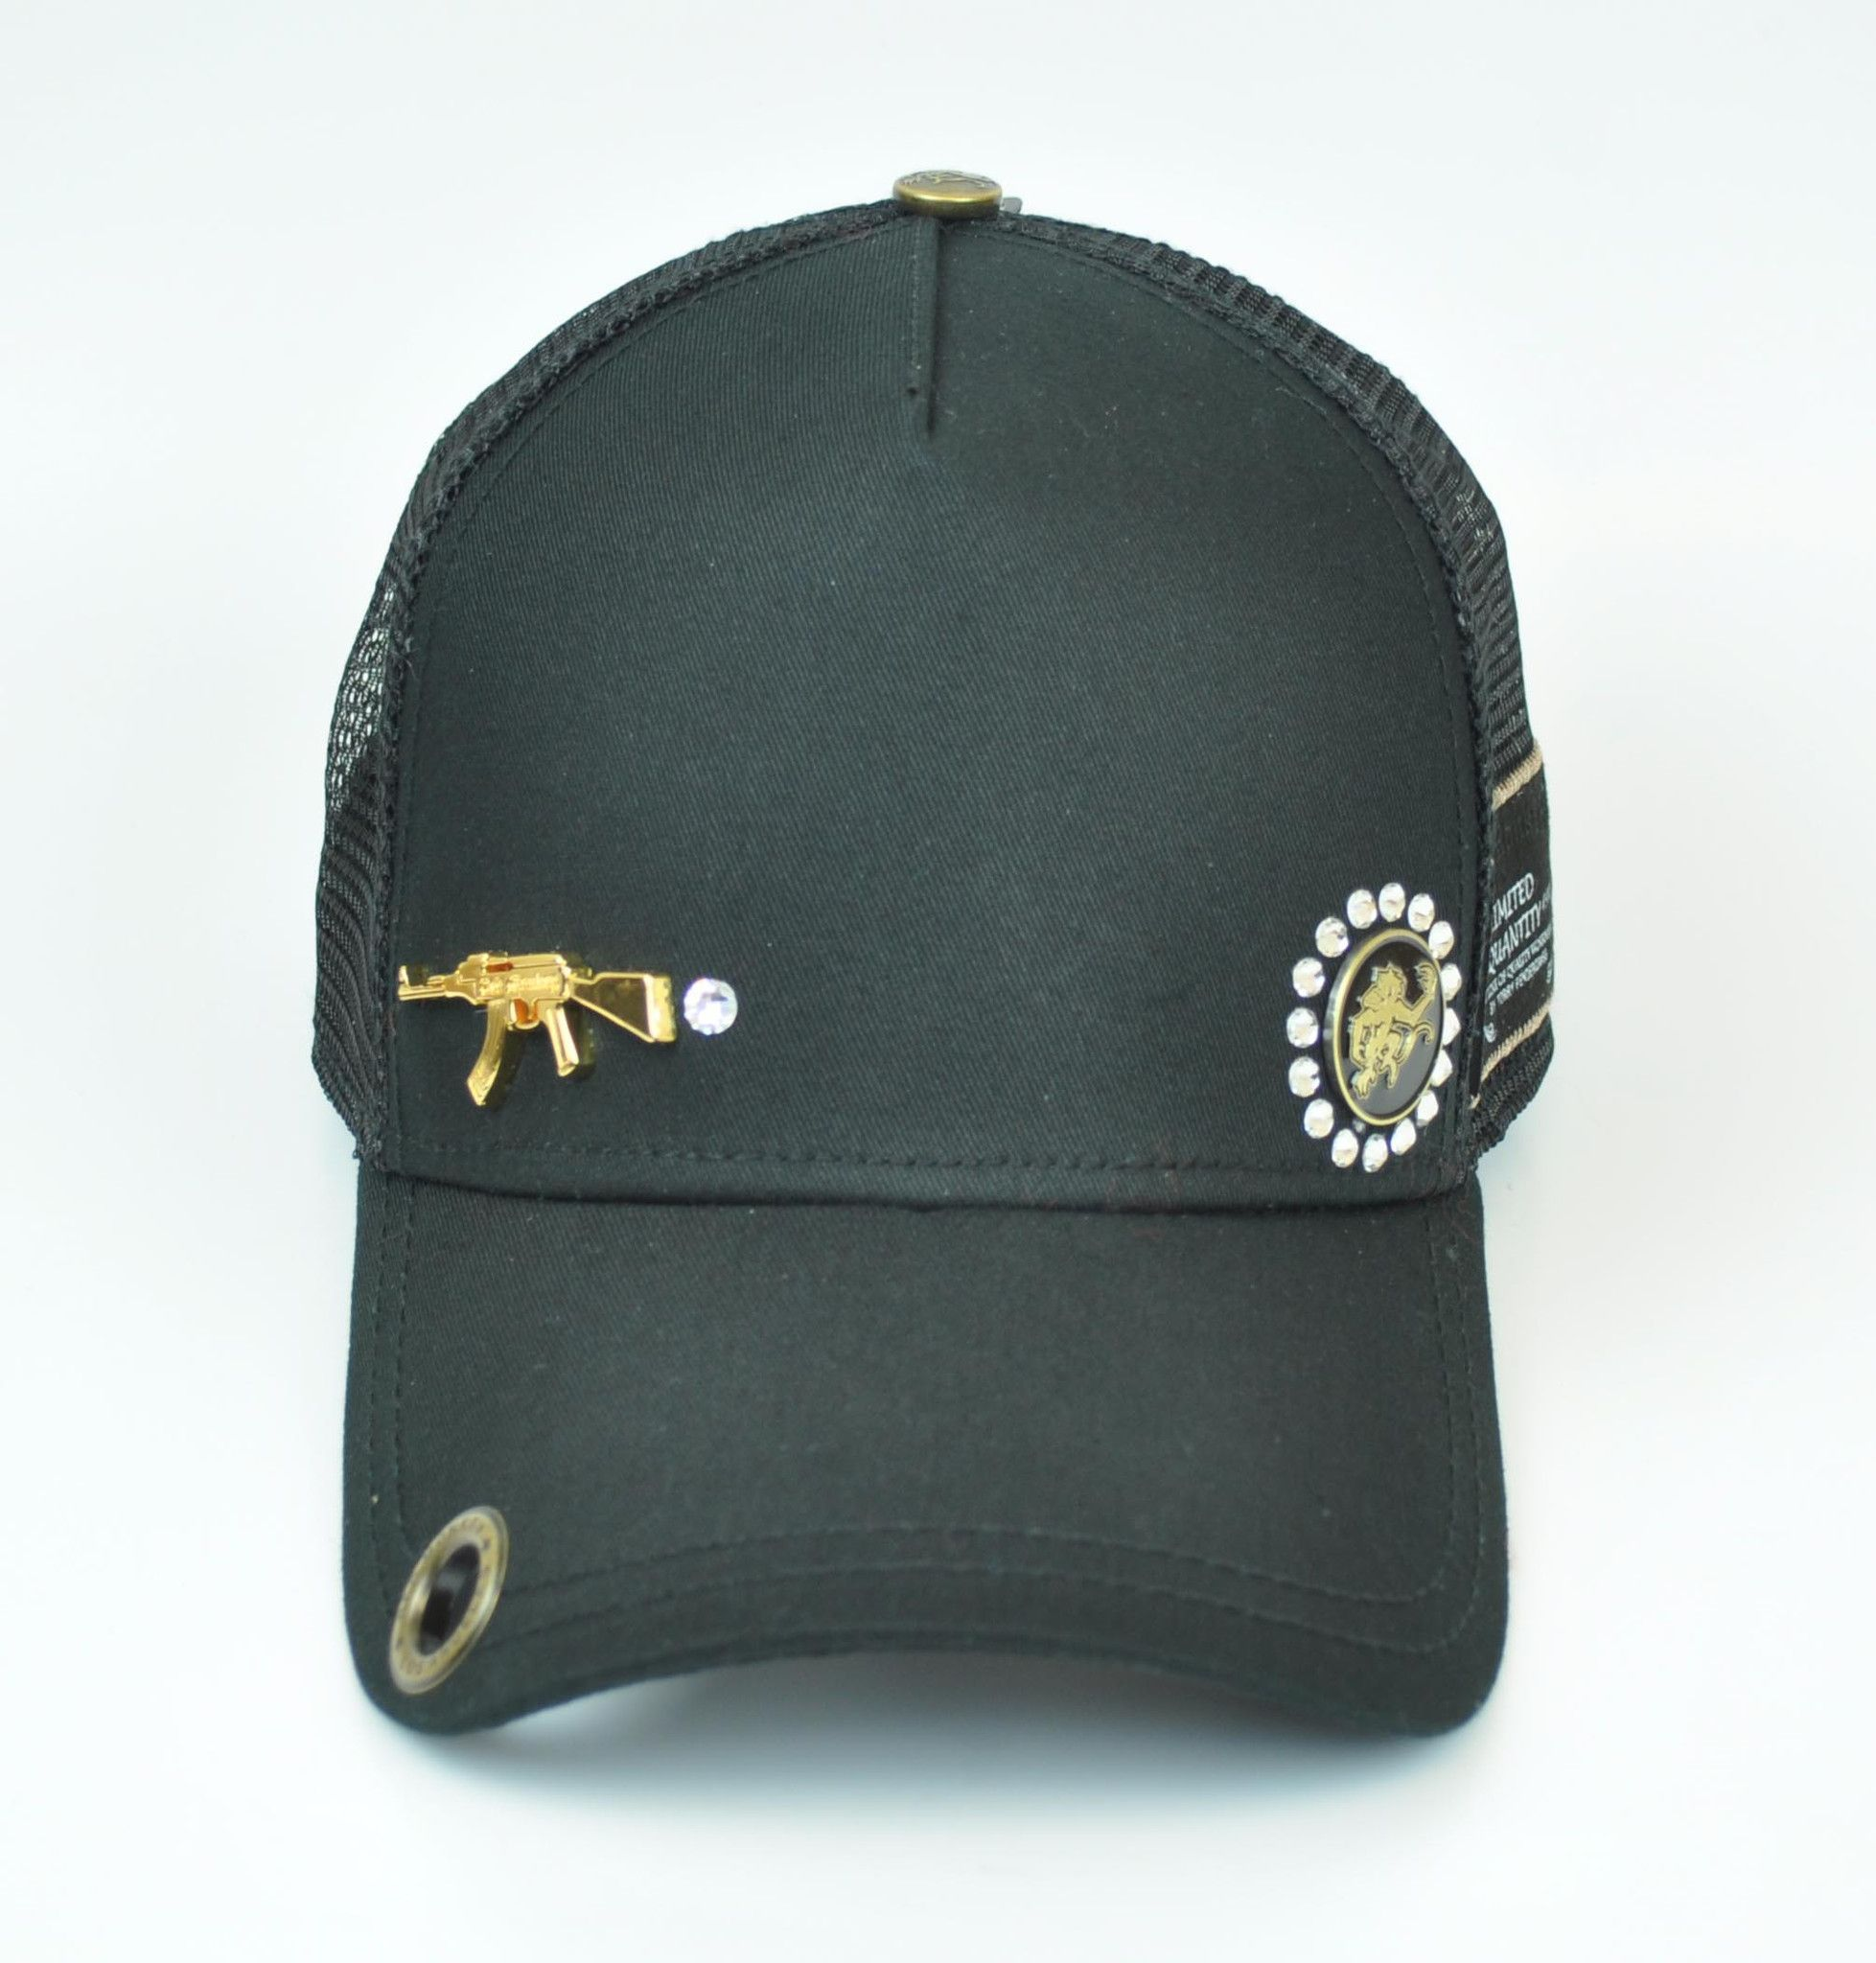 Red Monkey AK47 Exclusivo Edition Black Trucker Hat | Hats | Pinterest